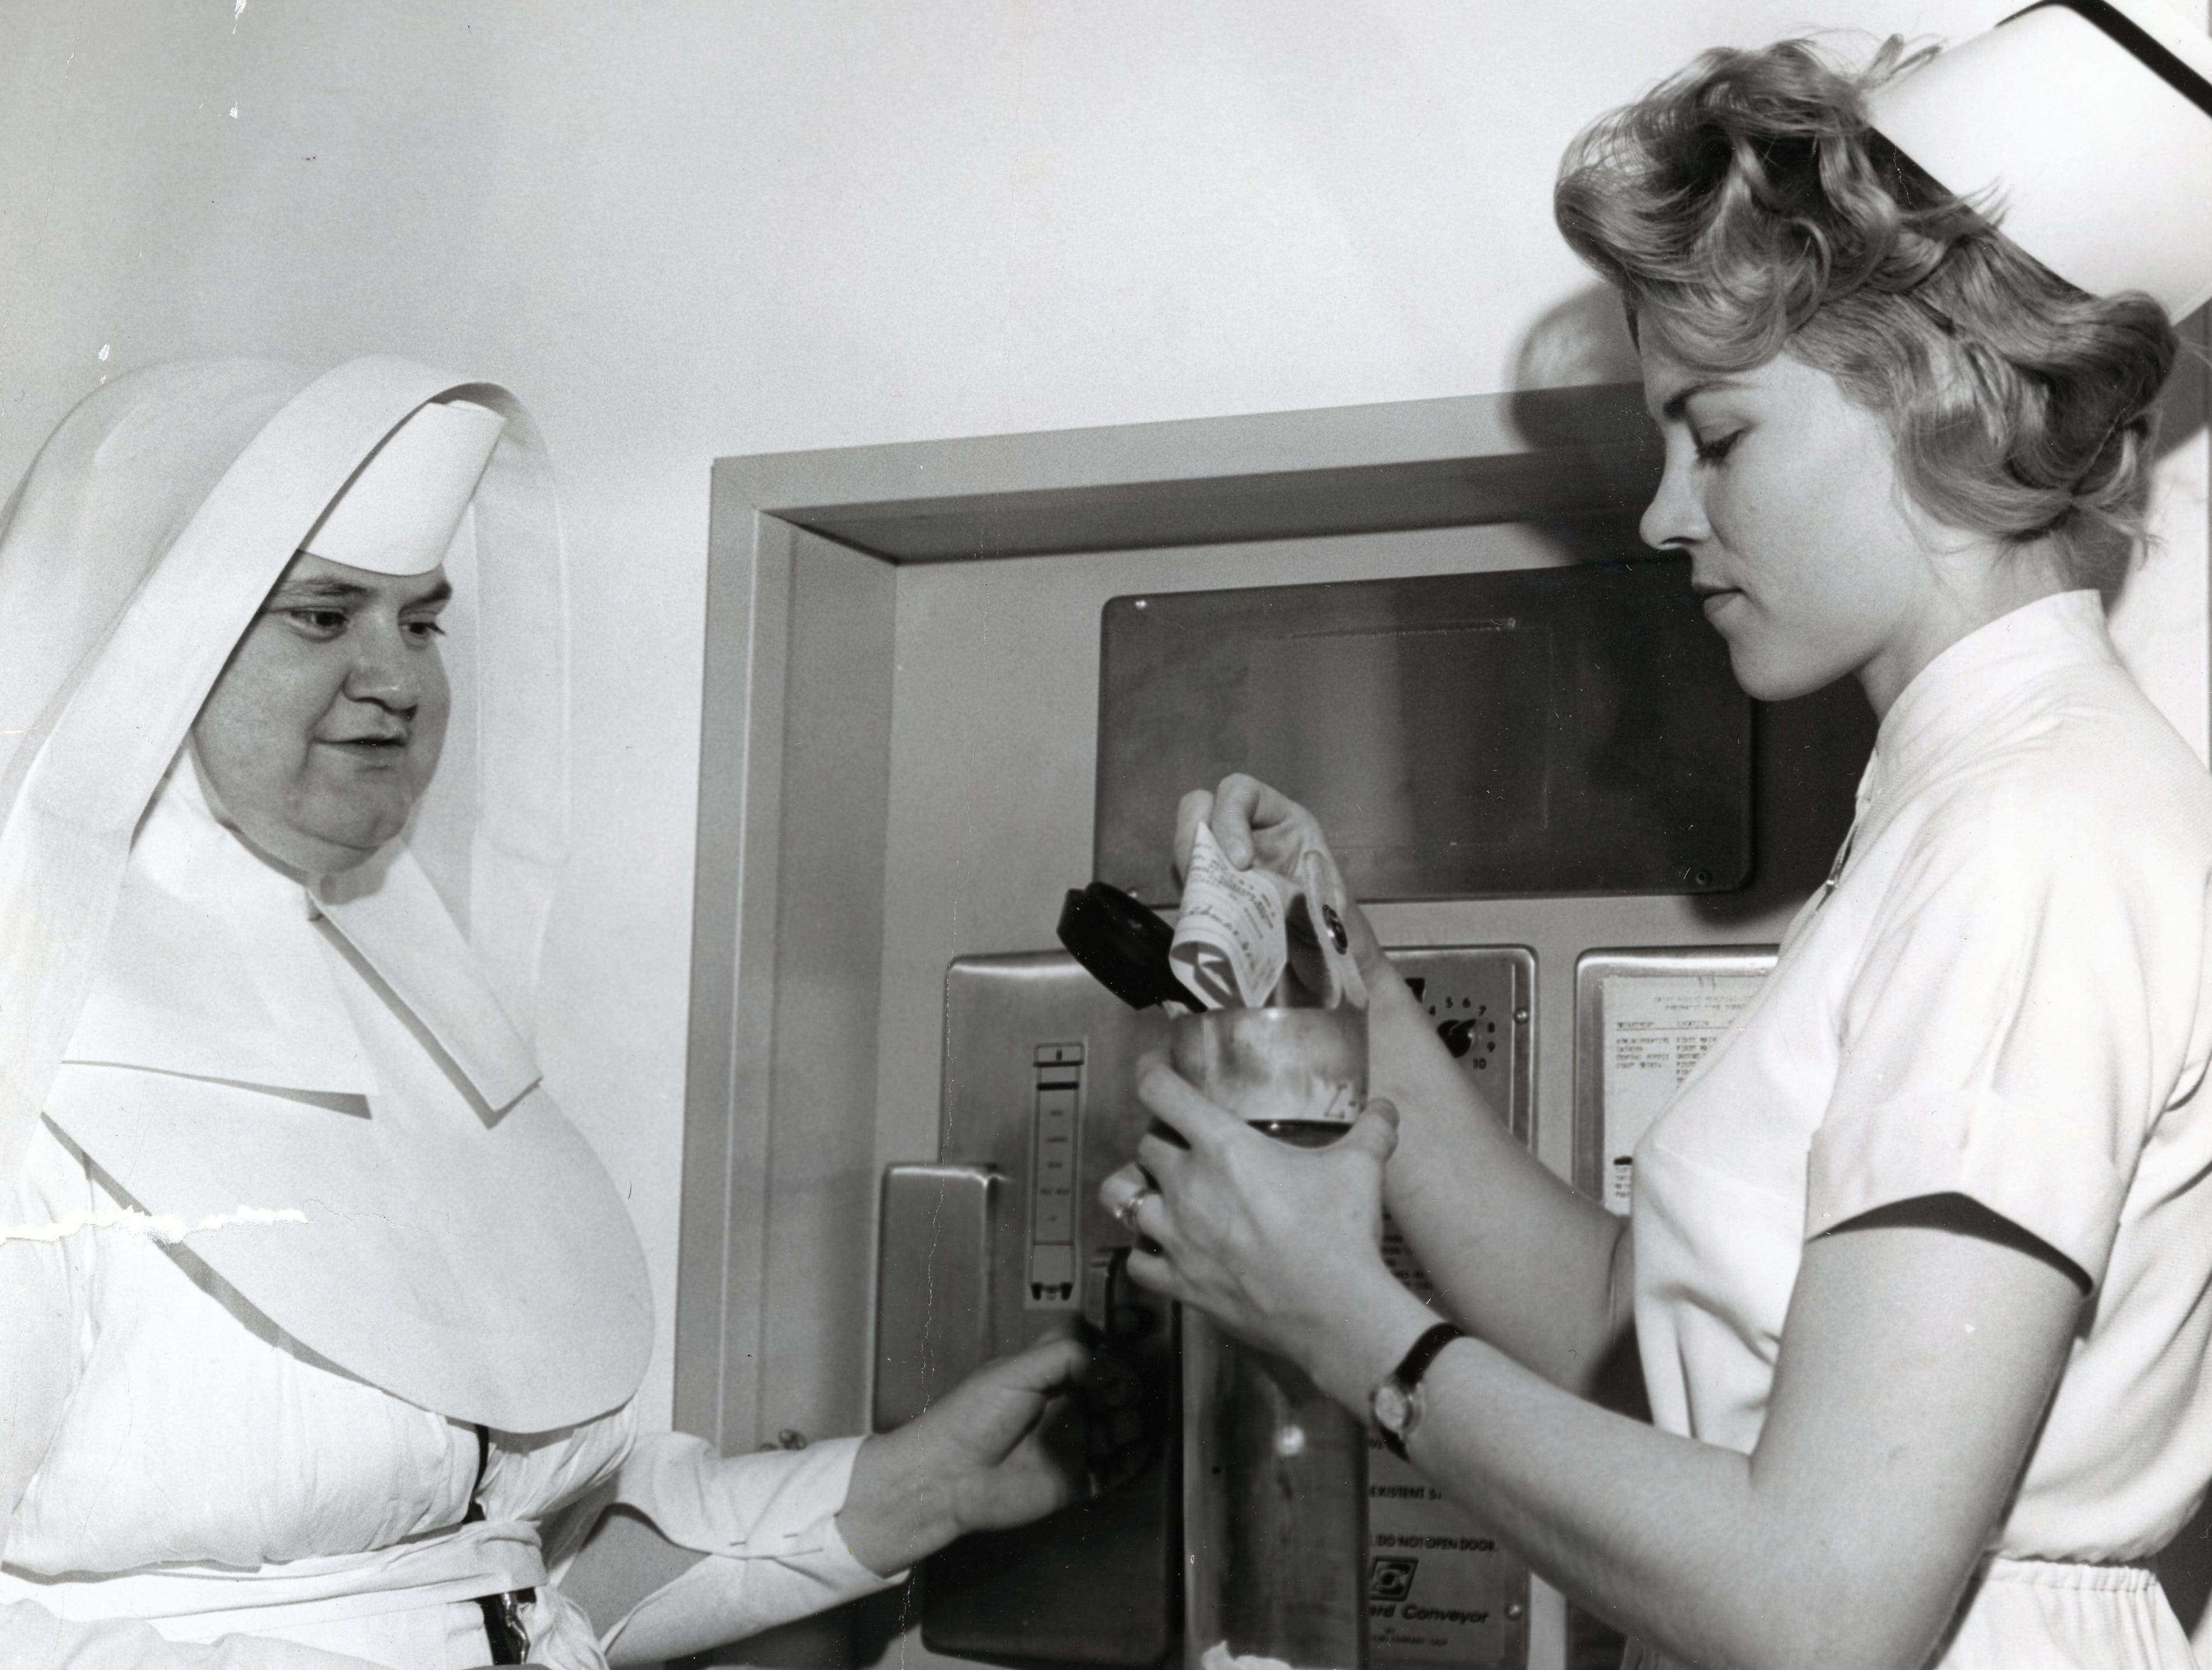 Sister Mary Laura, administrator at St. Mary's, and Barbara Coleman, registered nurse and instructor, with a pneumatic tube system at St. Mary's Hospital in March 1965.